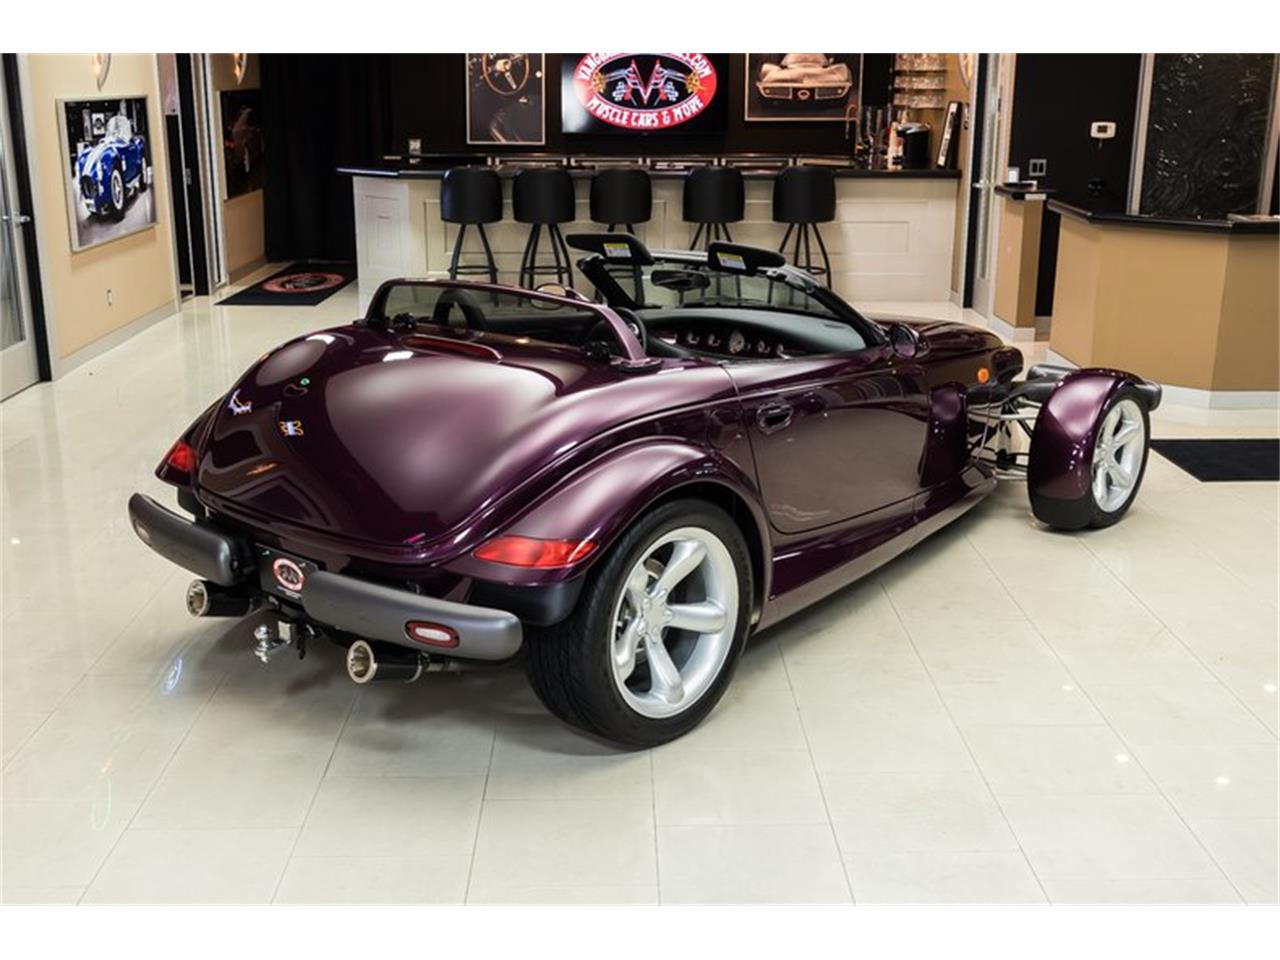 Large Picture of 1997 Plymouth Prowler located in Michigan Offered by Vanguard Motor Sales - PNI7